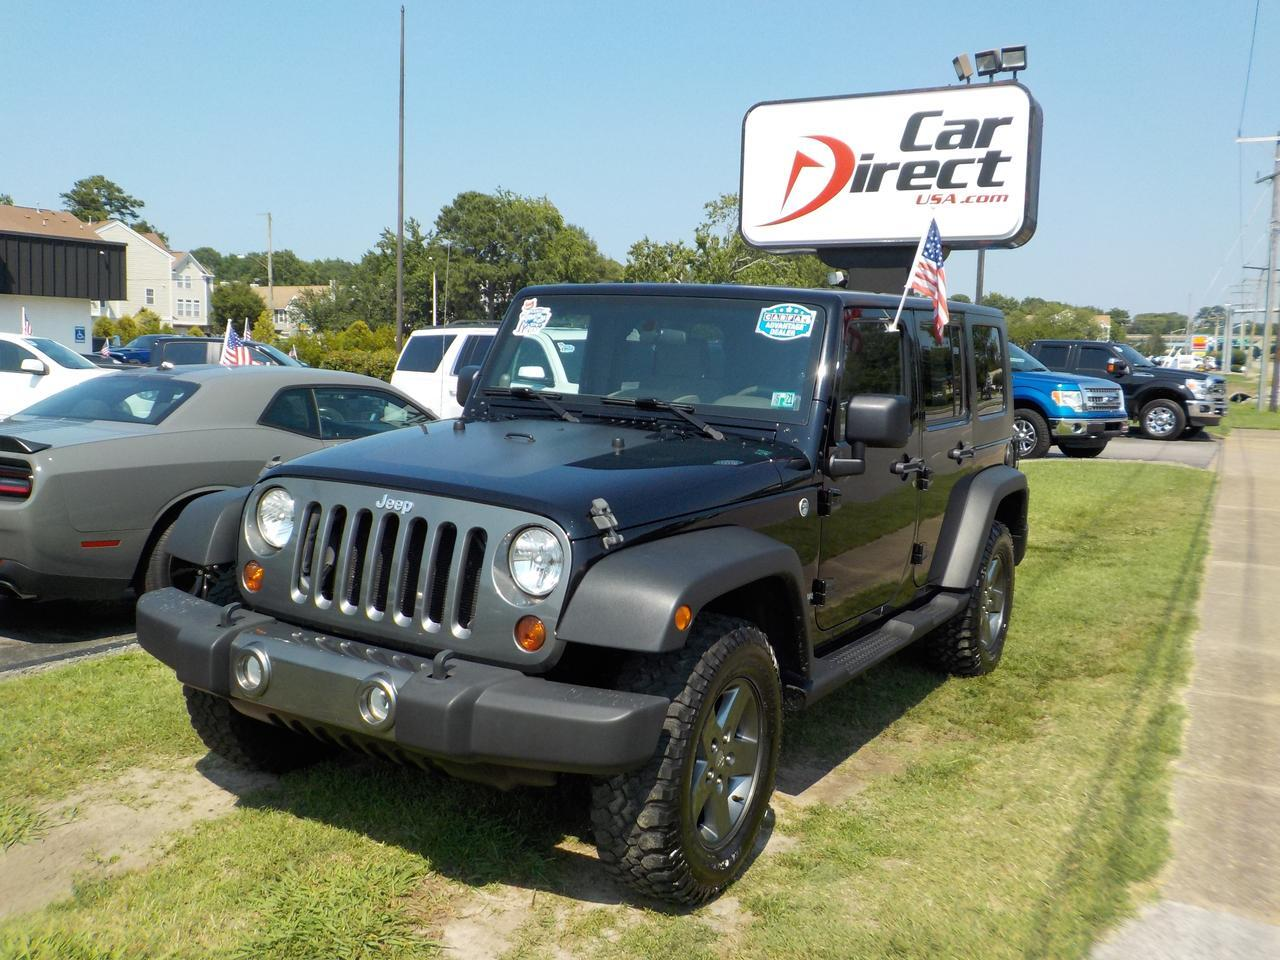 2010 JEEP WRANGLER UNLIMITED SPORT 4X4, CARFAX ONE OWNER, RUNNING BOARDS, FENDER FLARES, TOW, AUX PORT, CLIMATE CONTROL Virginia Beach VA